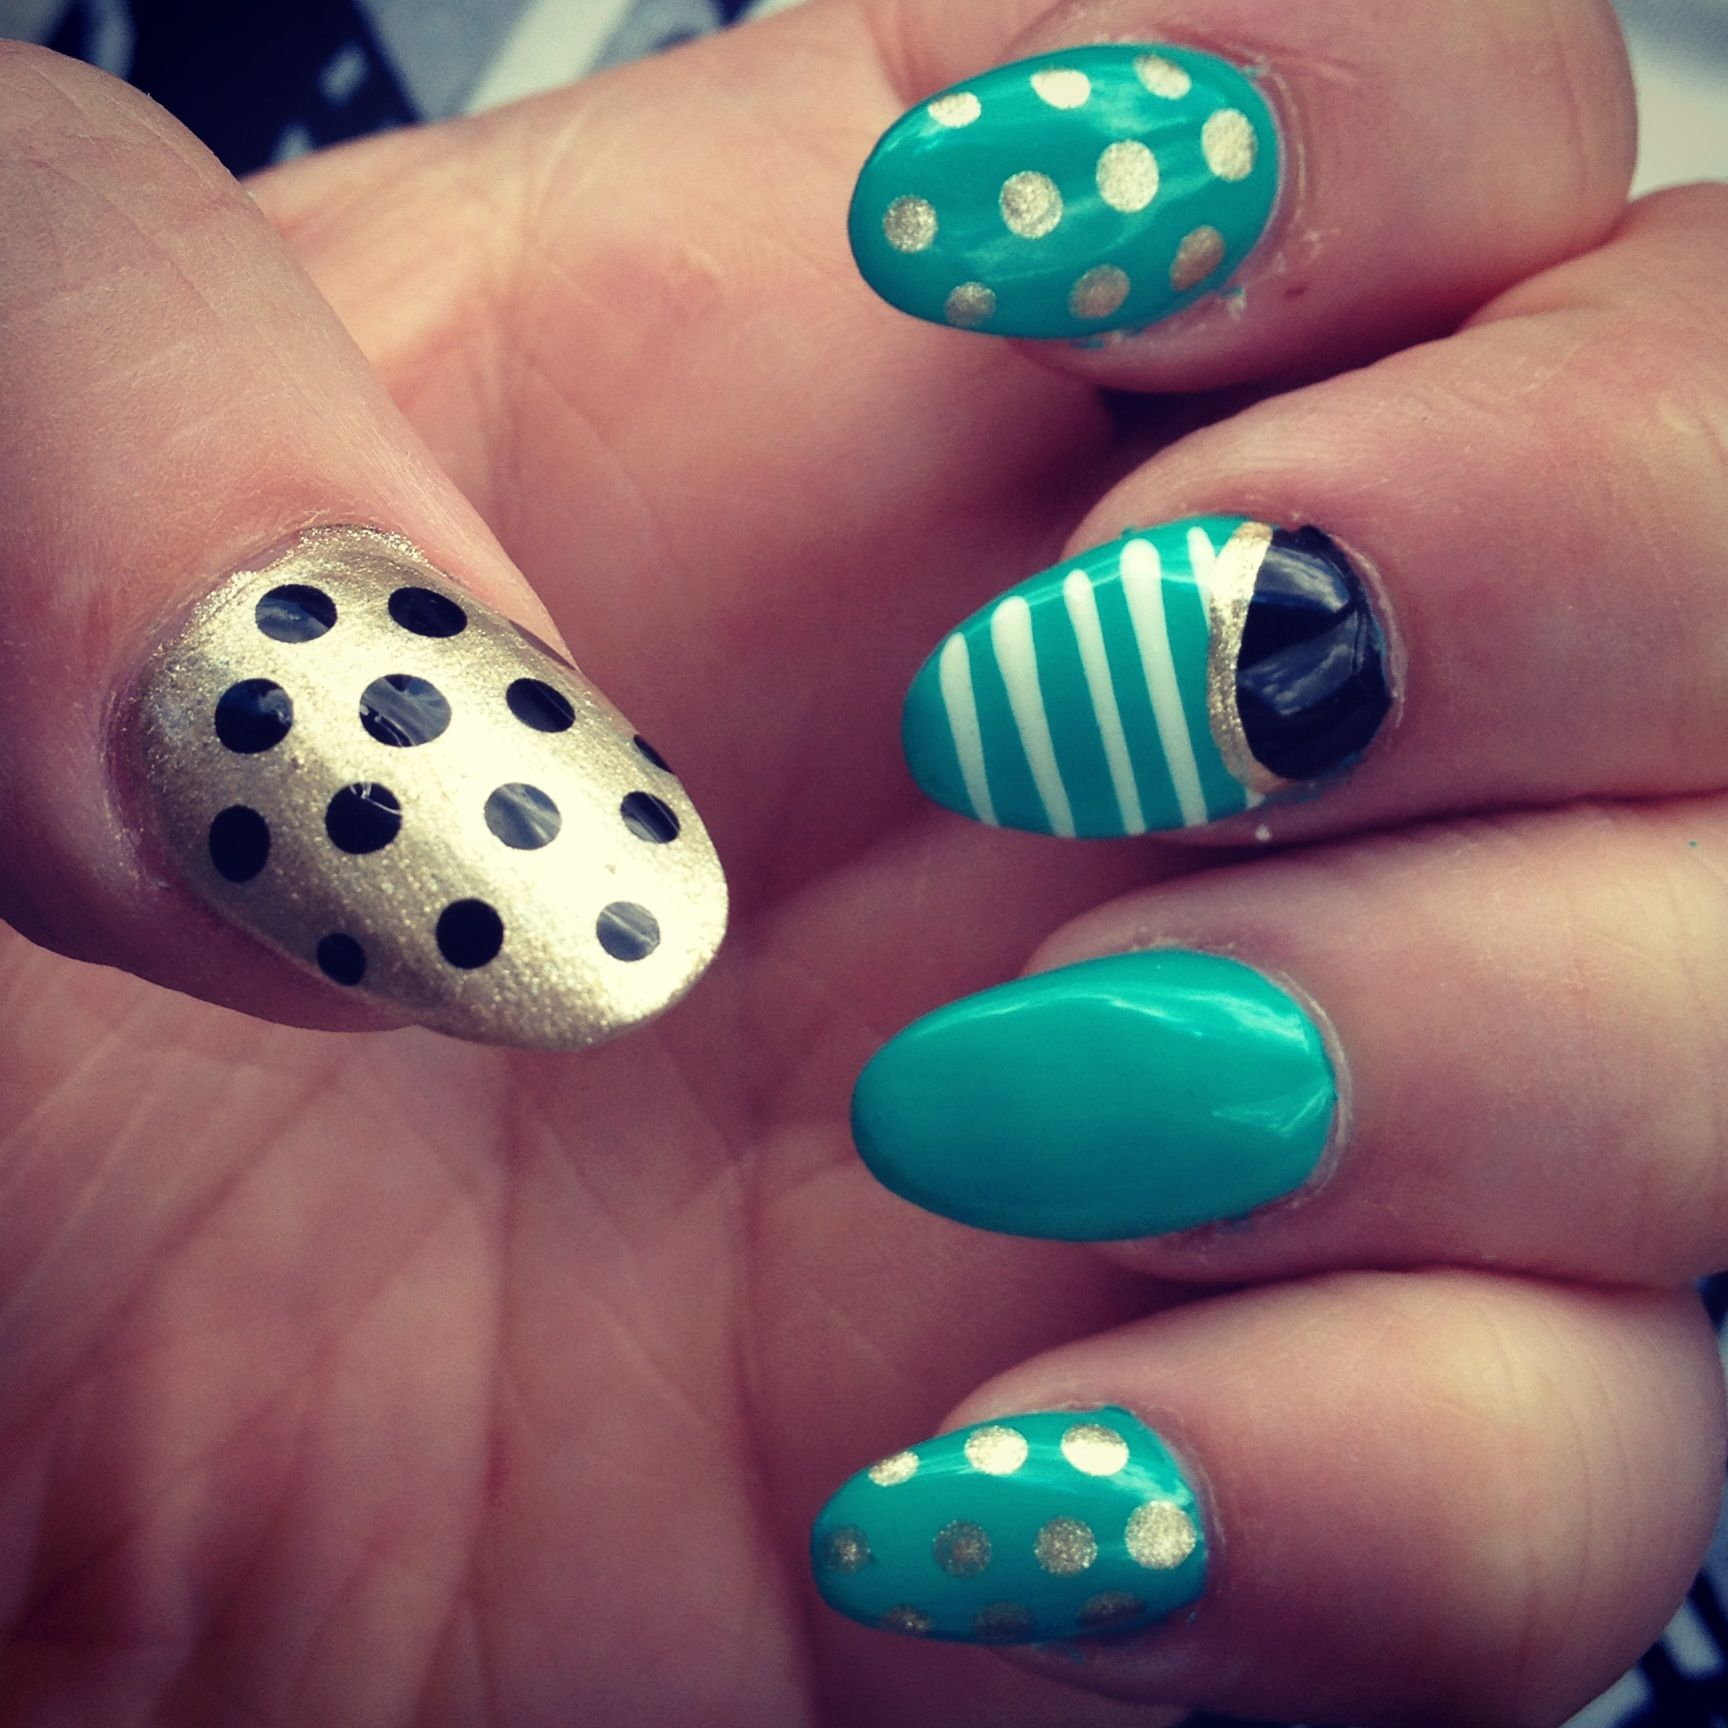 Summer nails | Nails | Pinterest | Art nails, Green nail art and ...